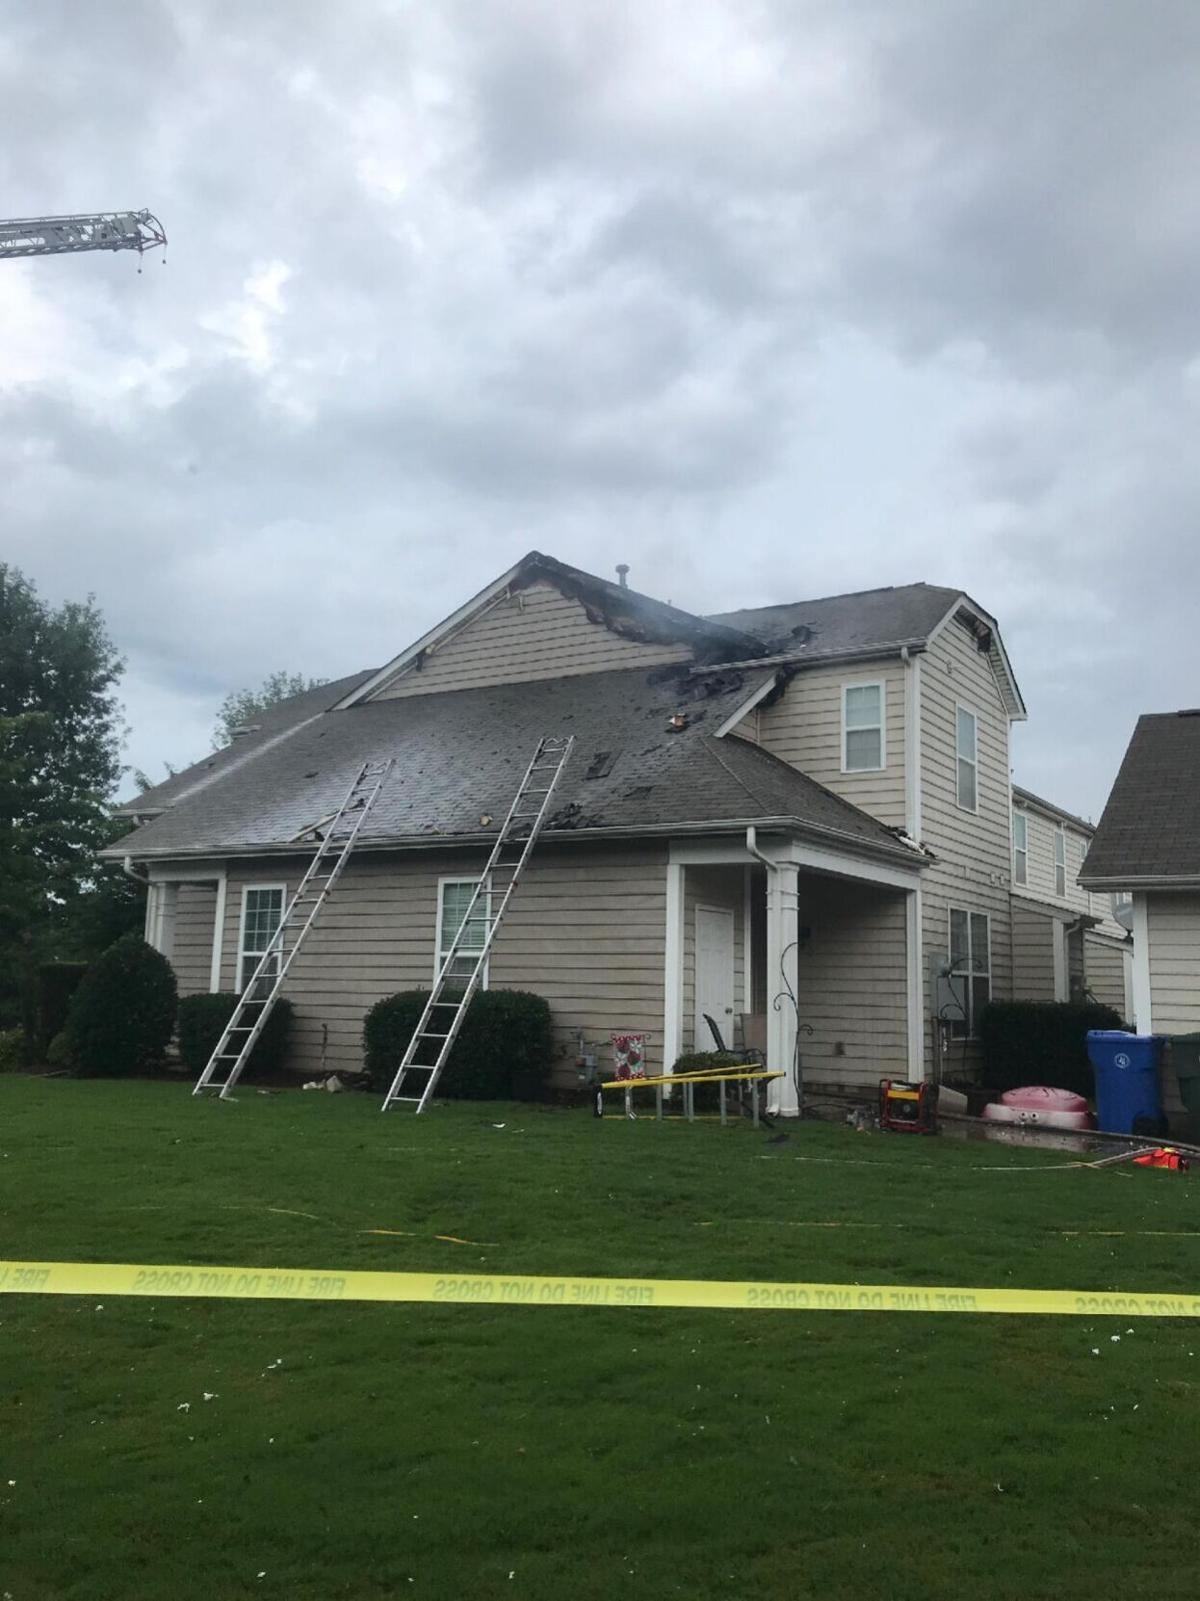 A house was damaged by a lightning strike on Leyton Loop in Mooresville on Monday.